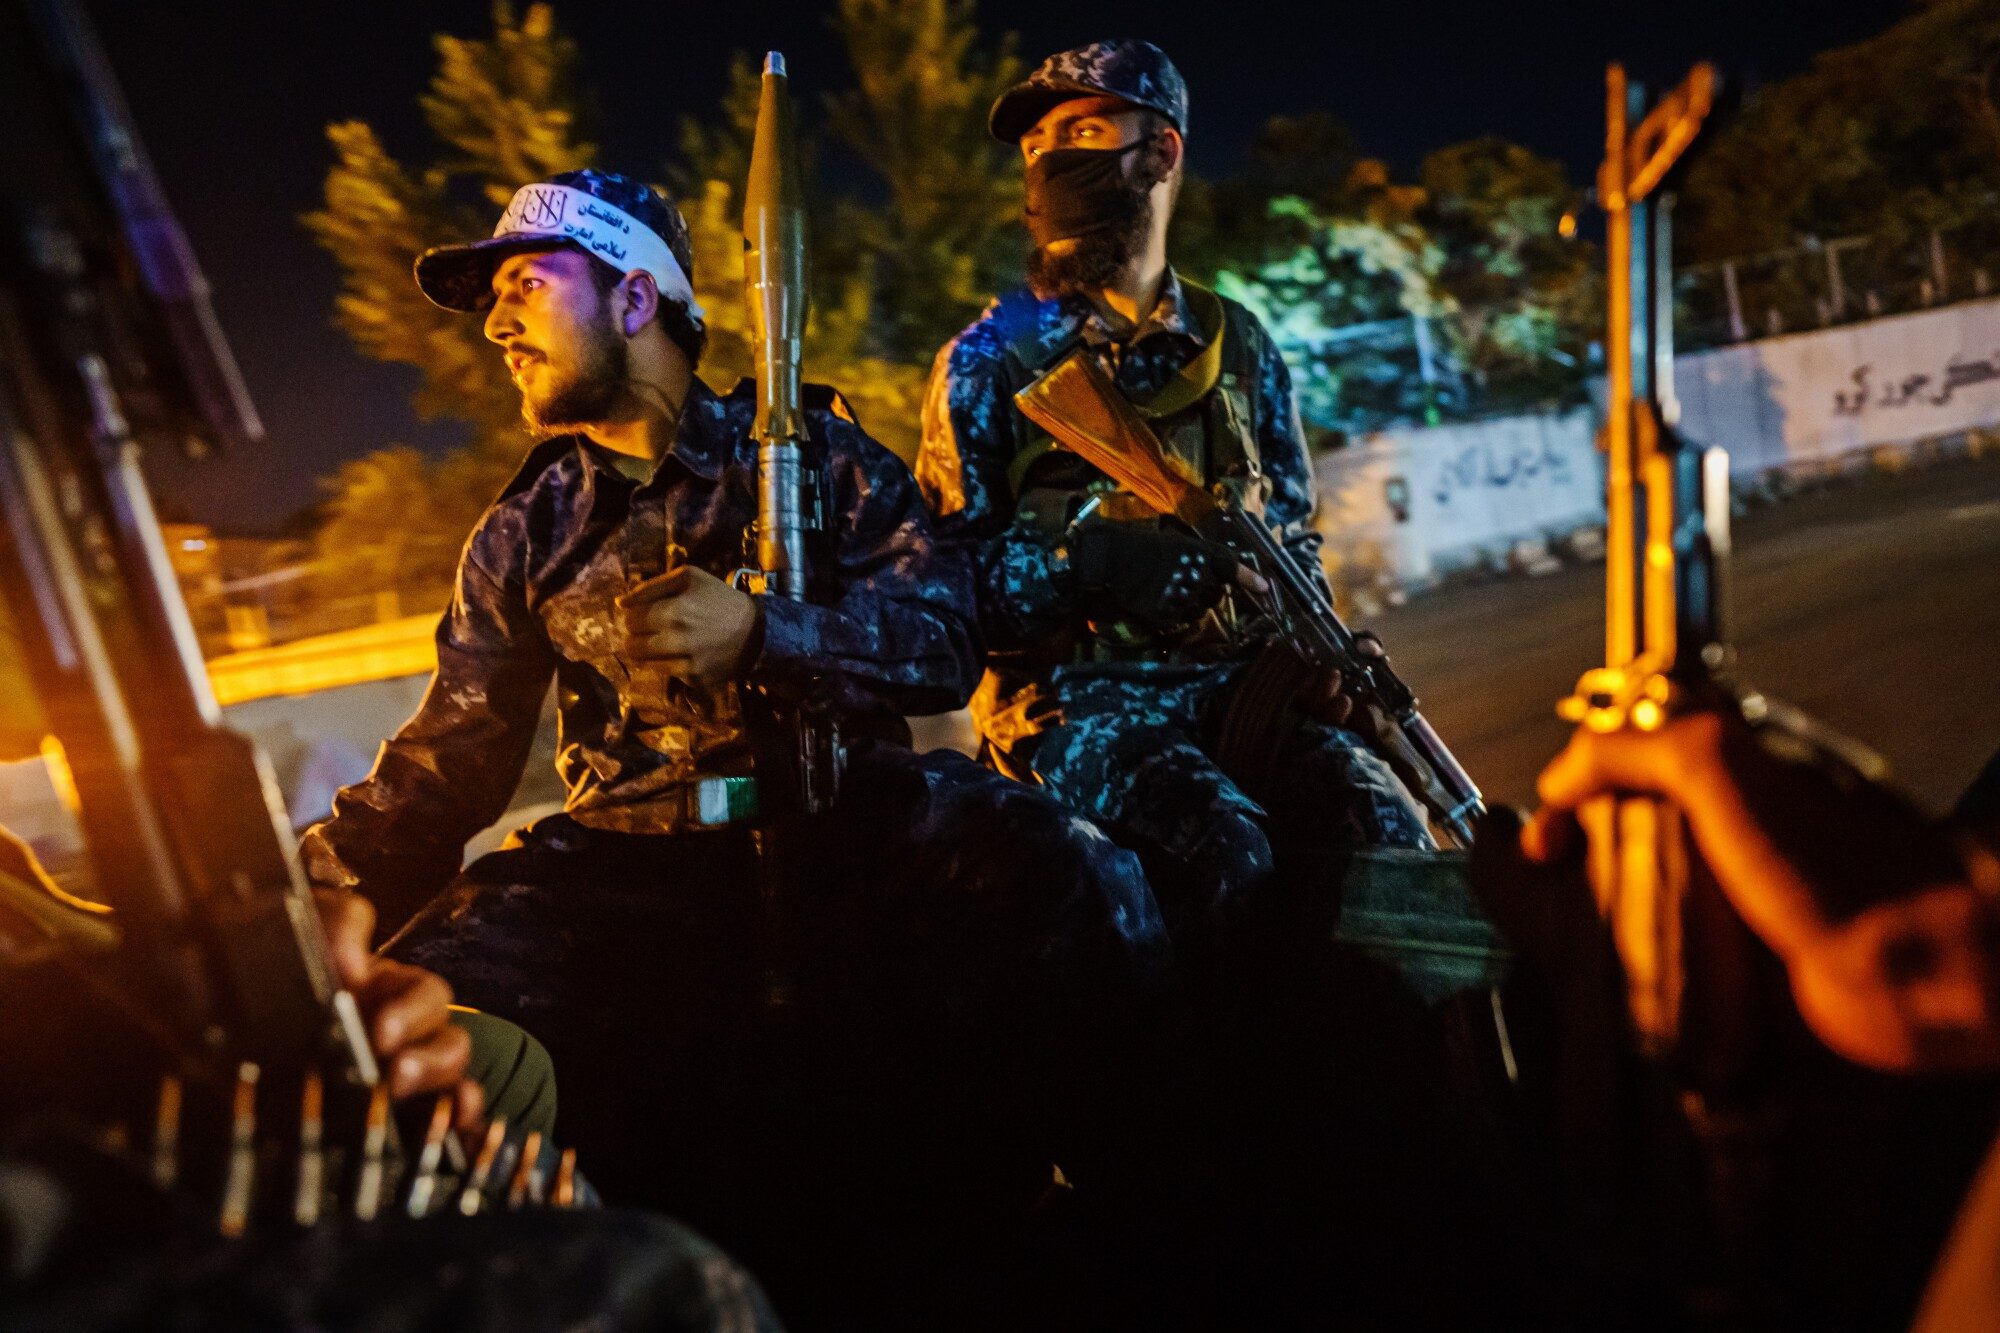 Men with rifles ride in a vehicle at night